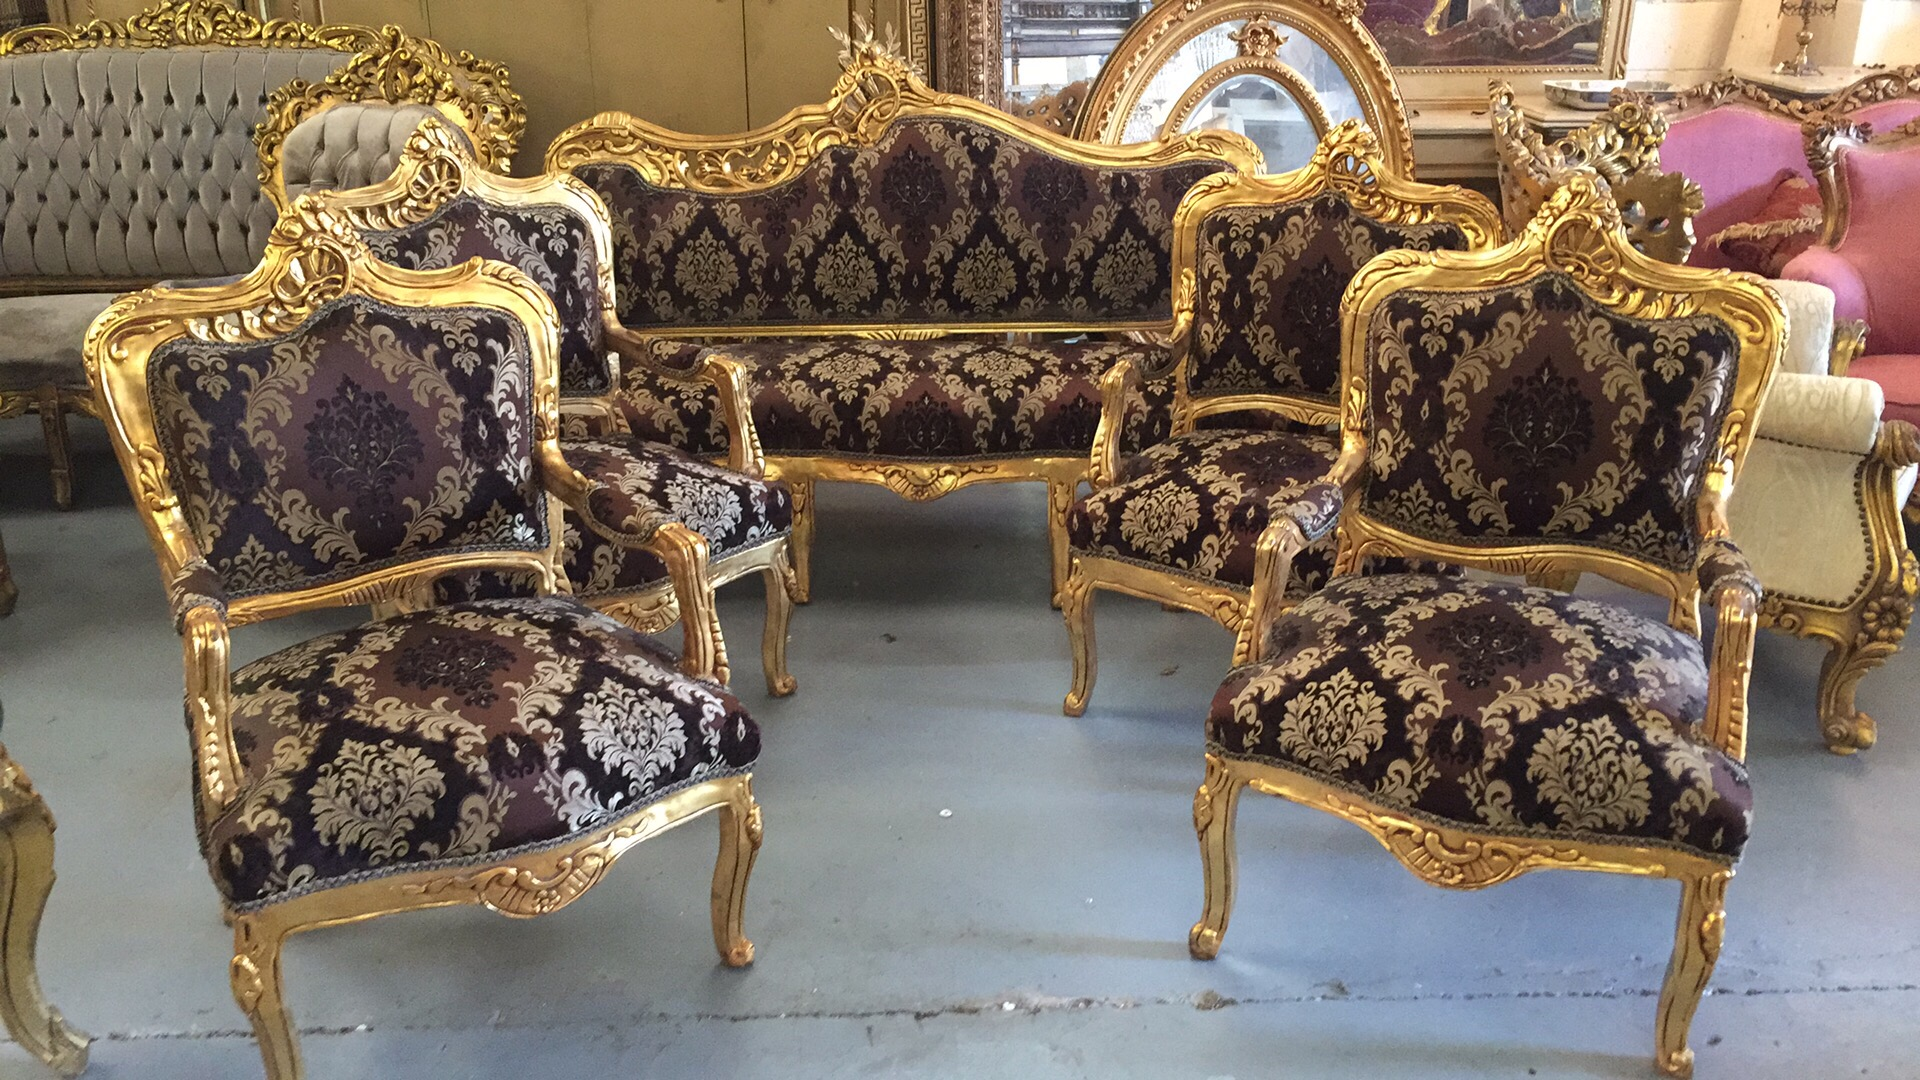 Renaissance Antique Furniture and Lighting Warehouse Dublin Ireland salon antiques